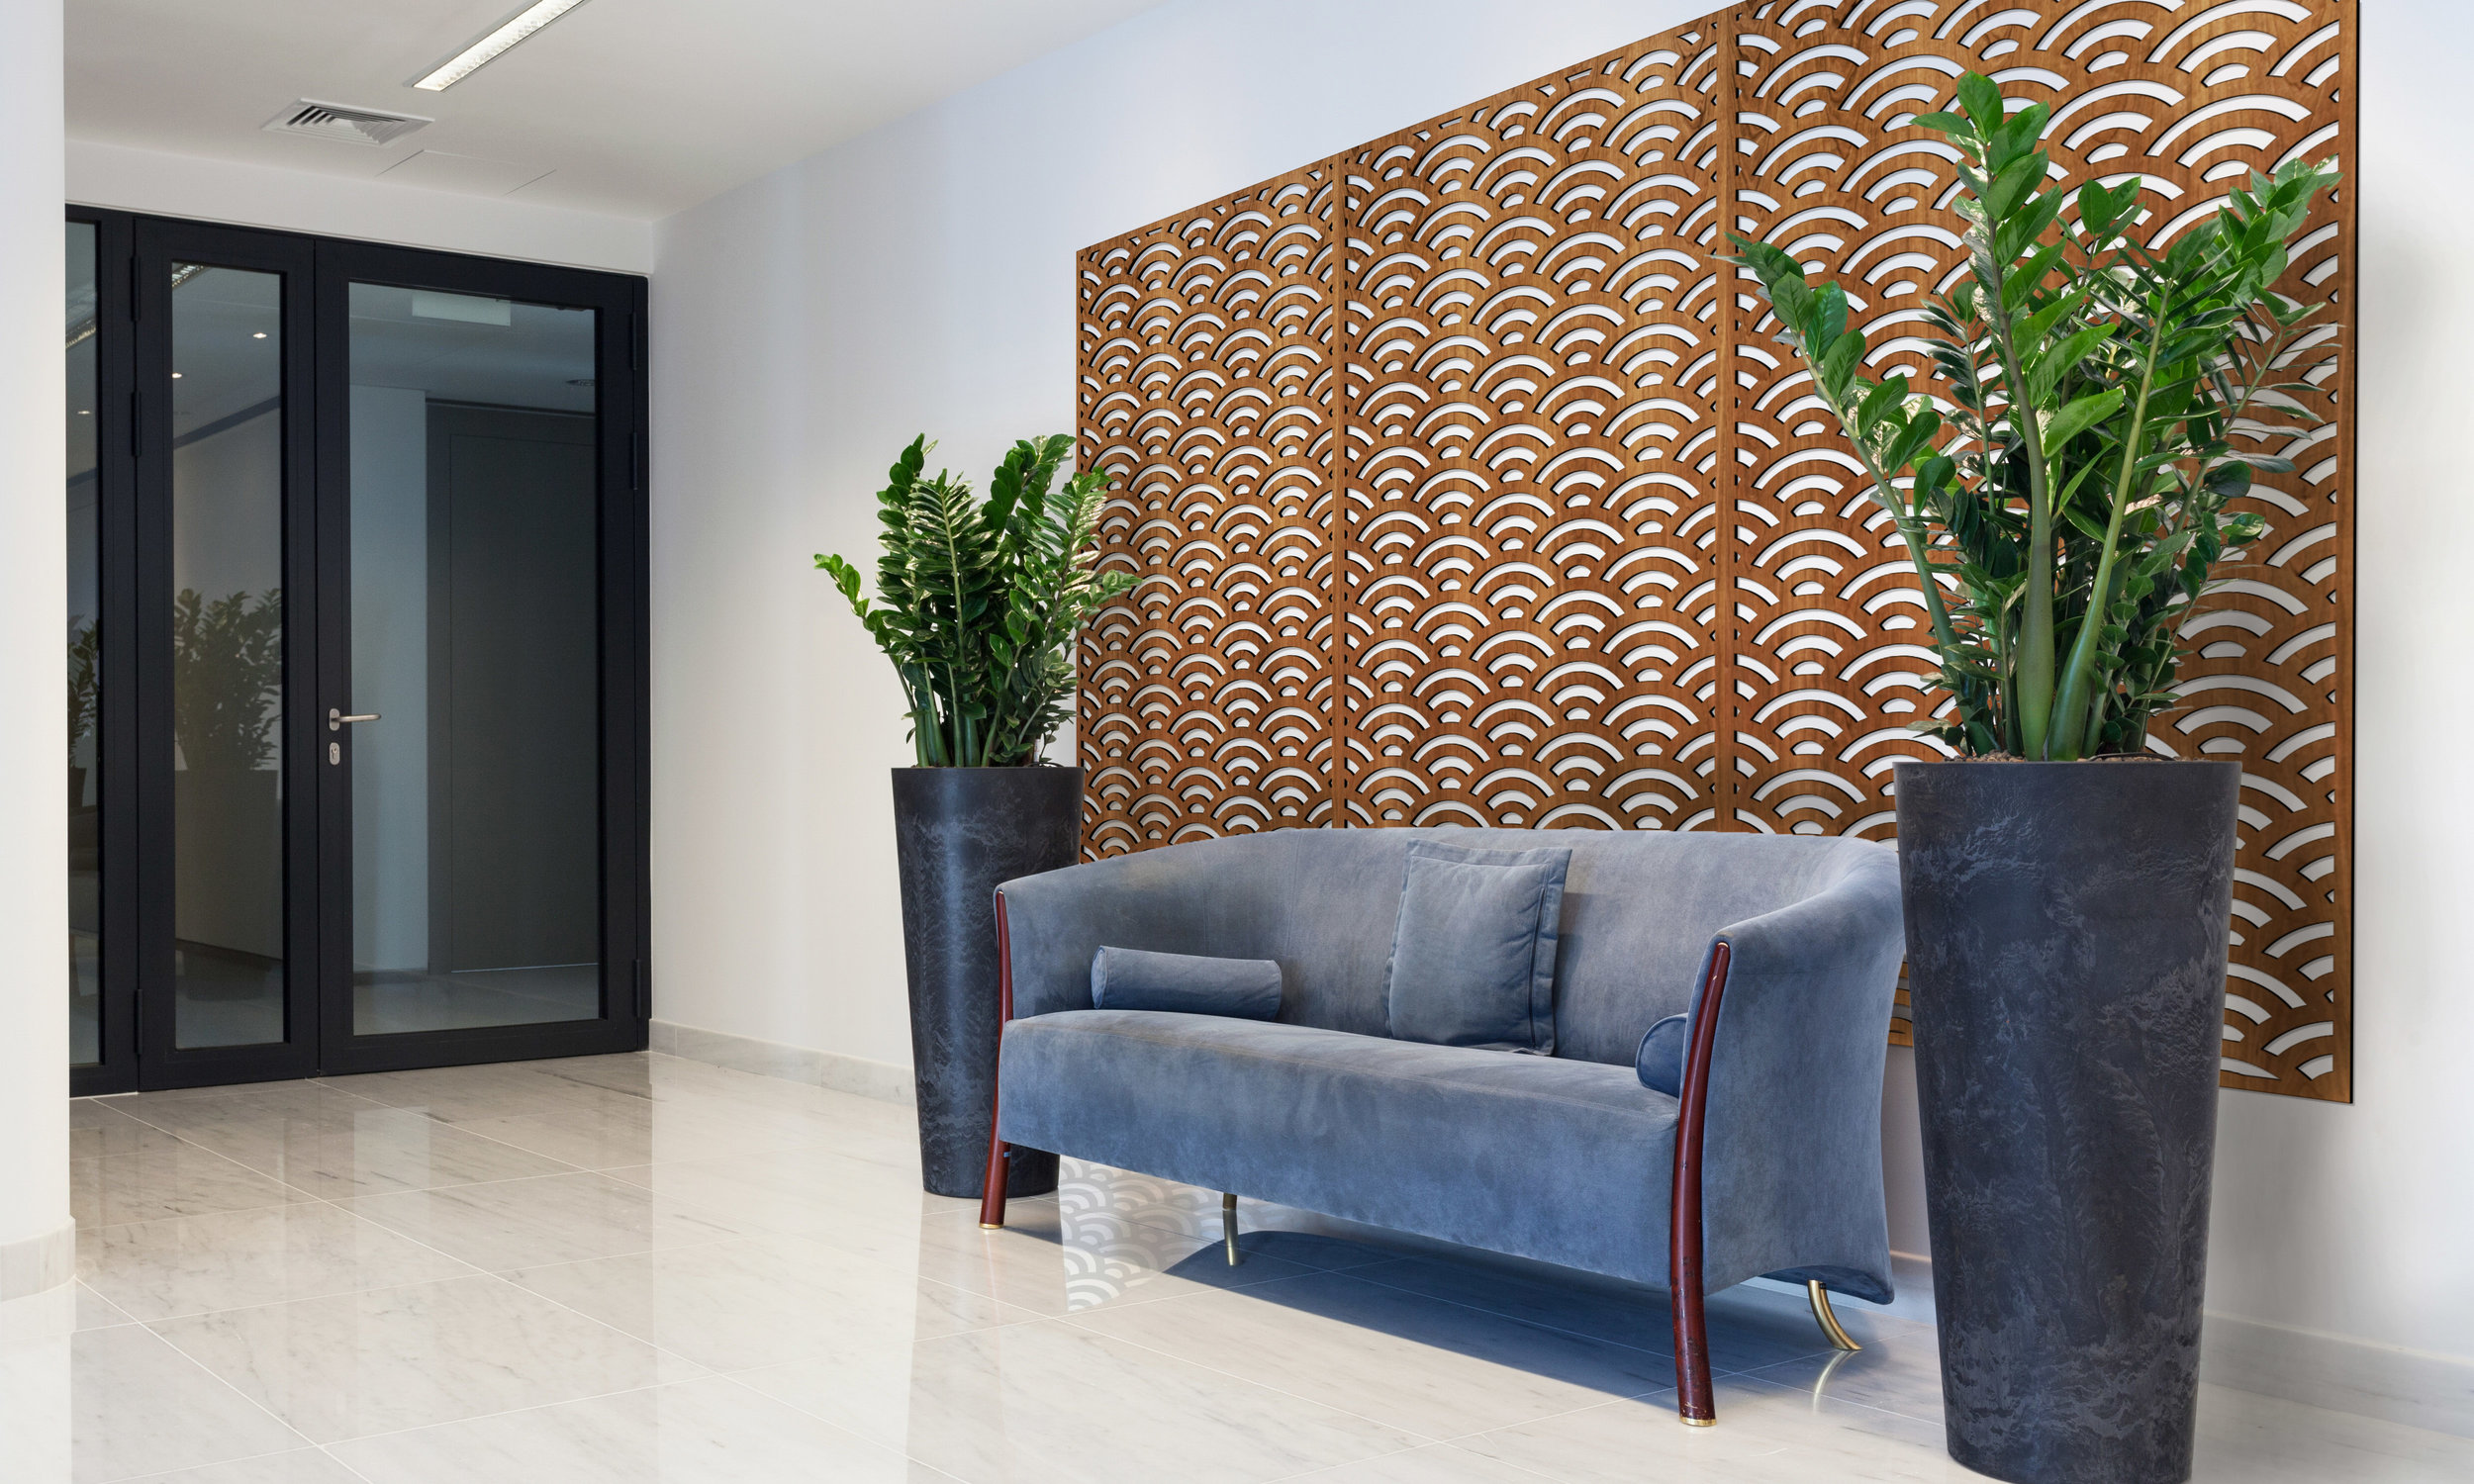 Installation Rendering A   Sunrise decorative office wall panel - shown in Cherry